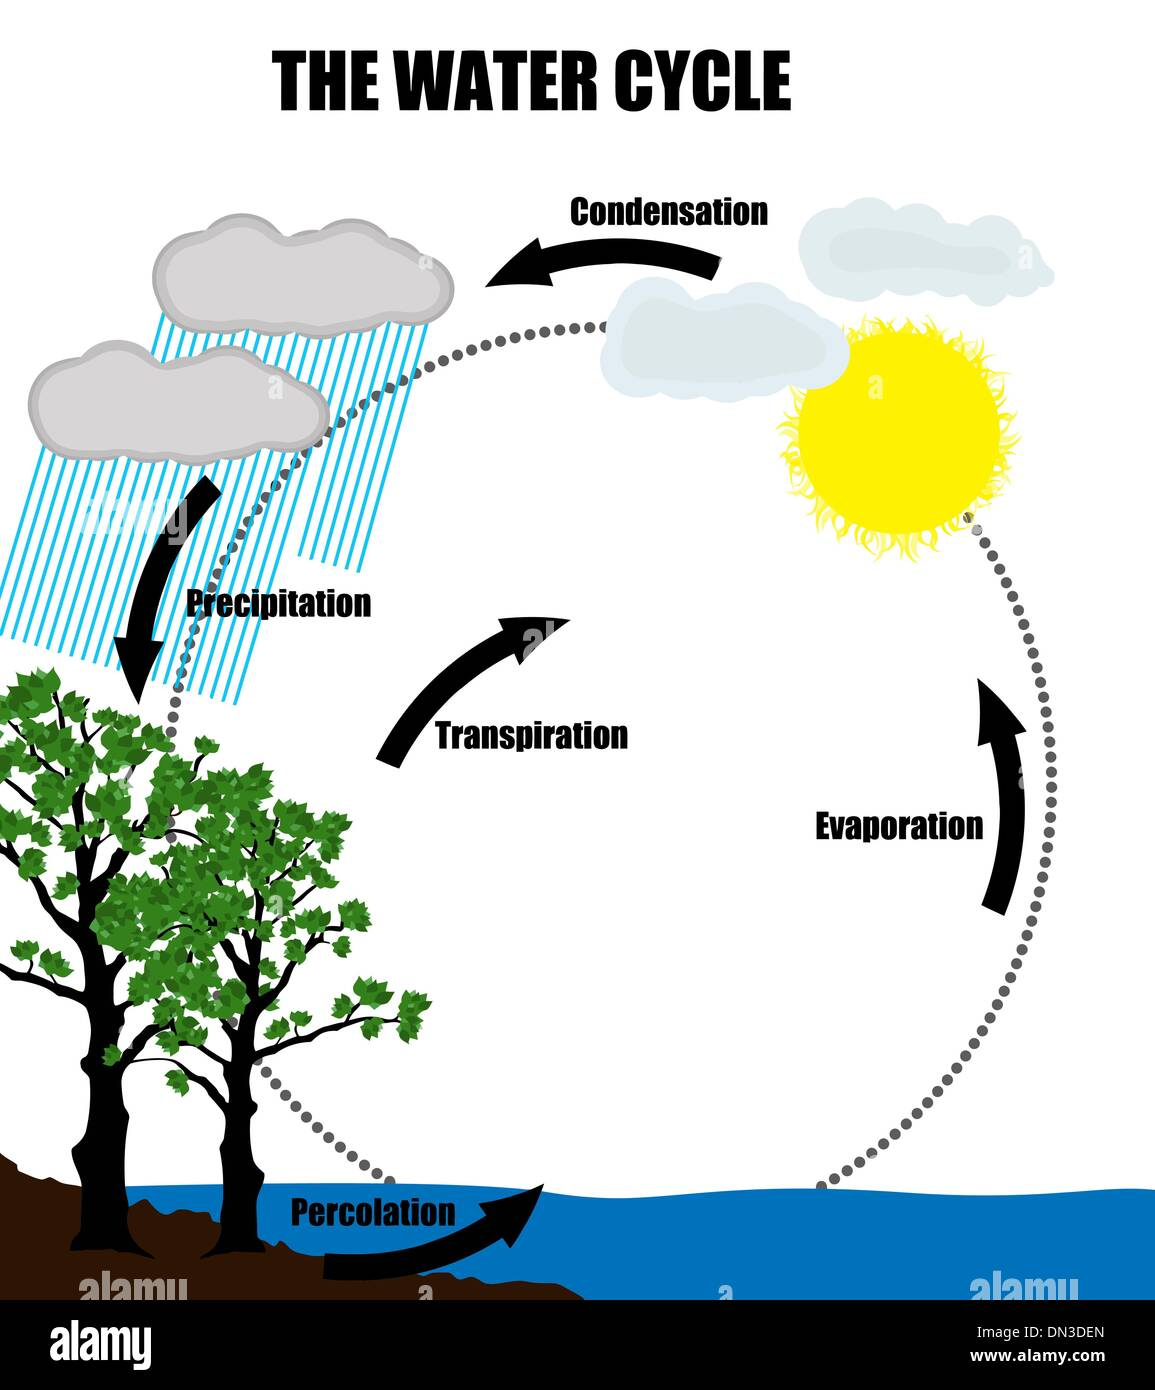 Water Cycle Diagram Stock Photos Water Cycle Diagram Stock